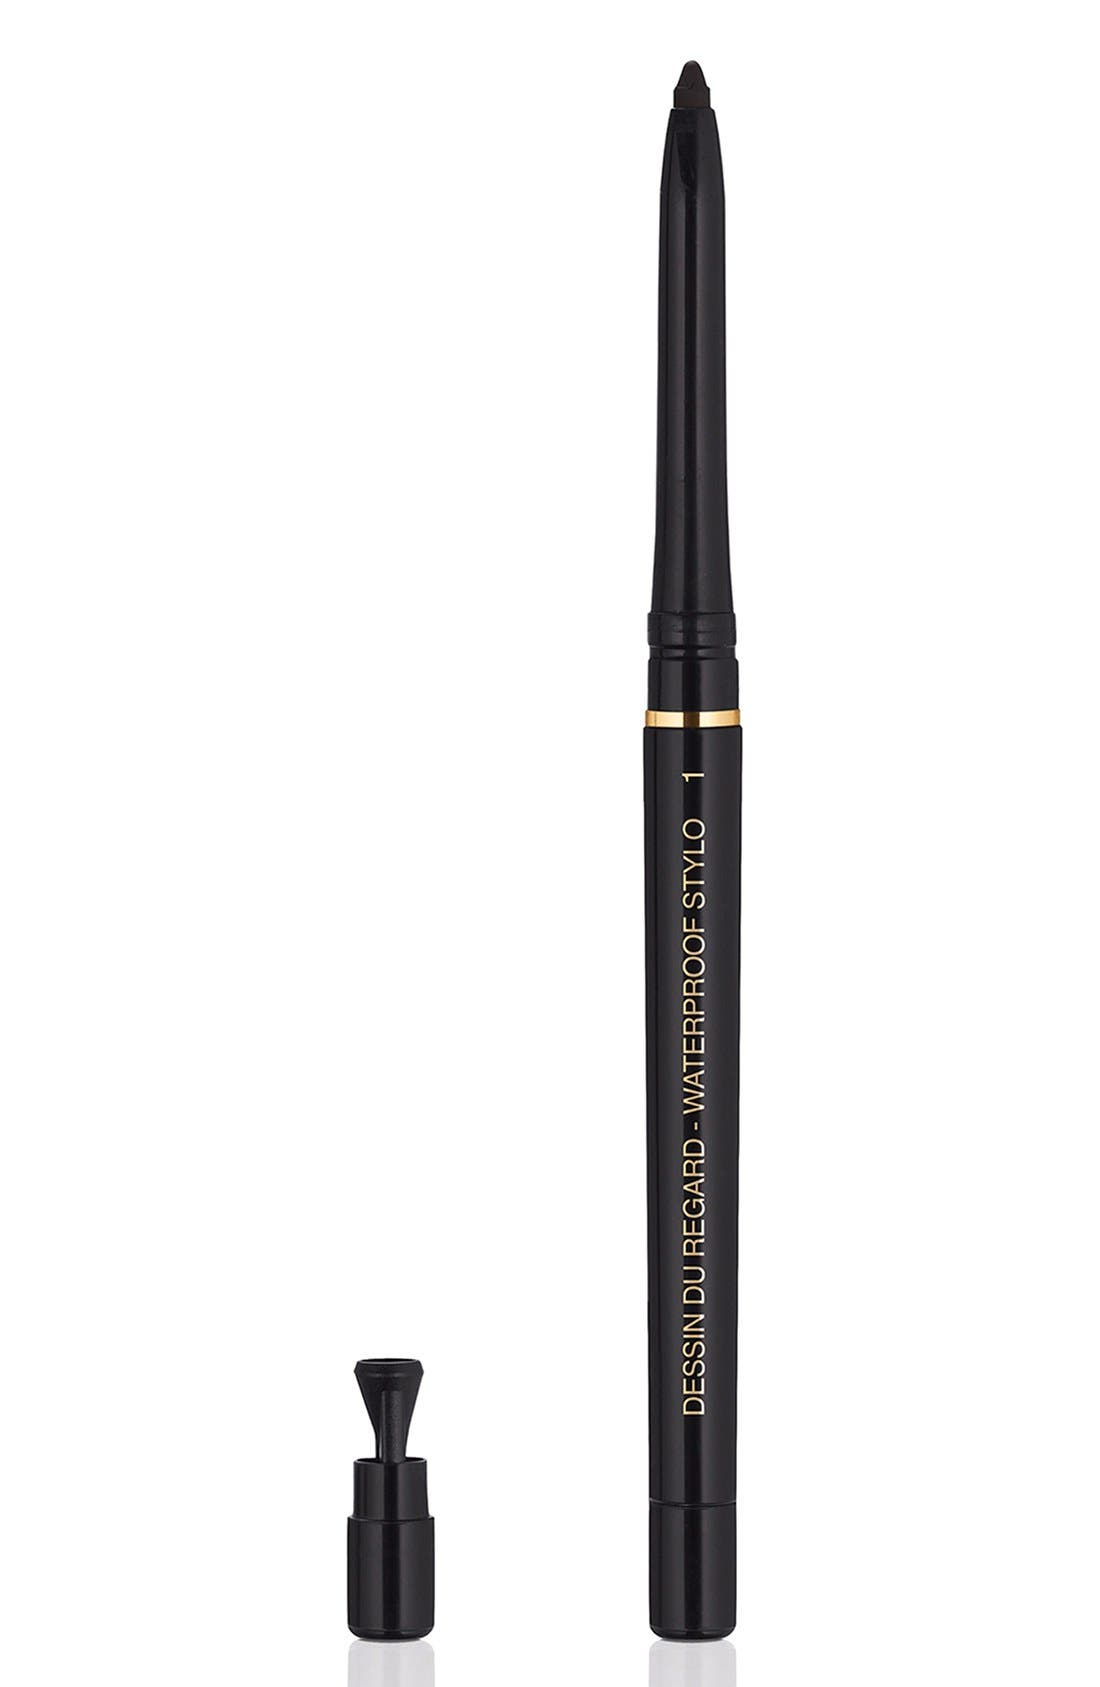 Yves Saint Laurent 'Dessin Du Regard' Waterproof Stylo